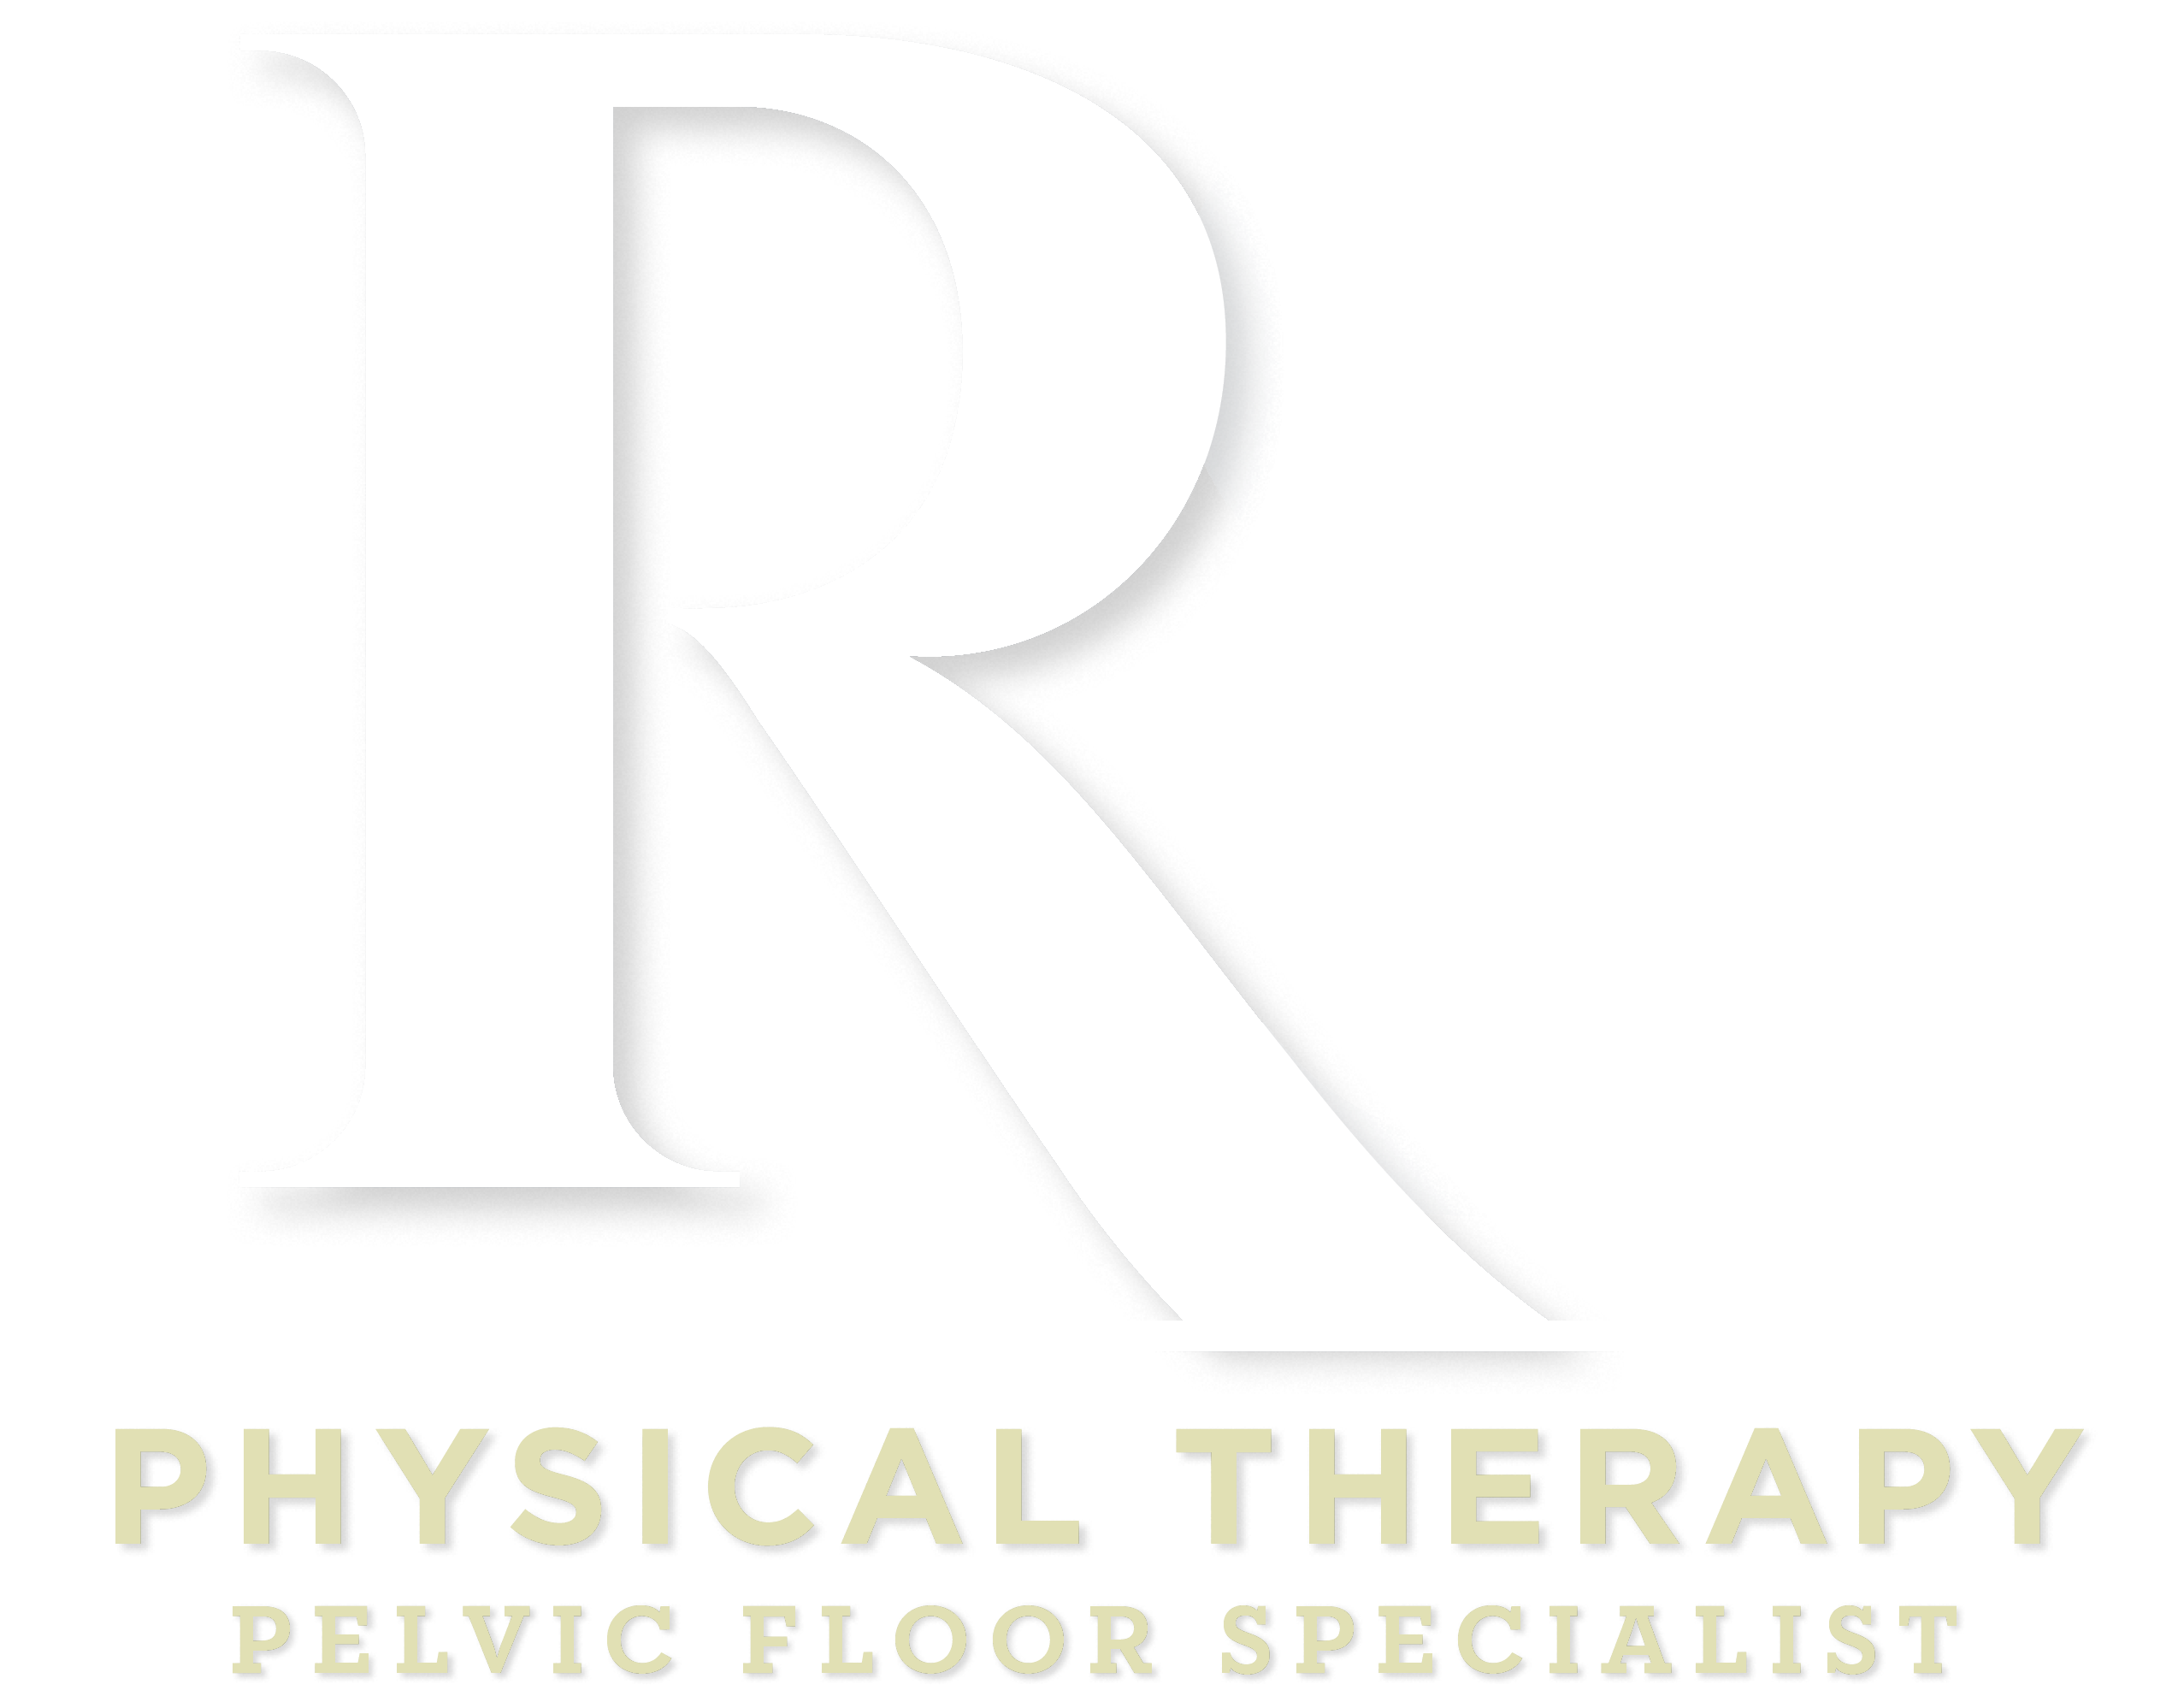 rs physical therapy pelvic floor specialist logo